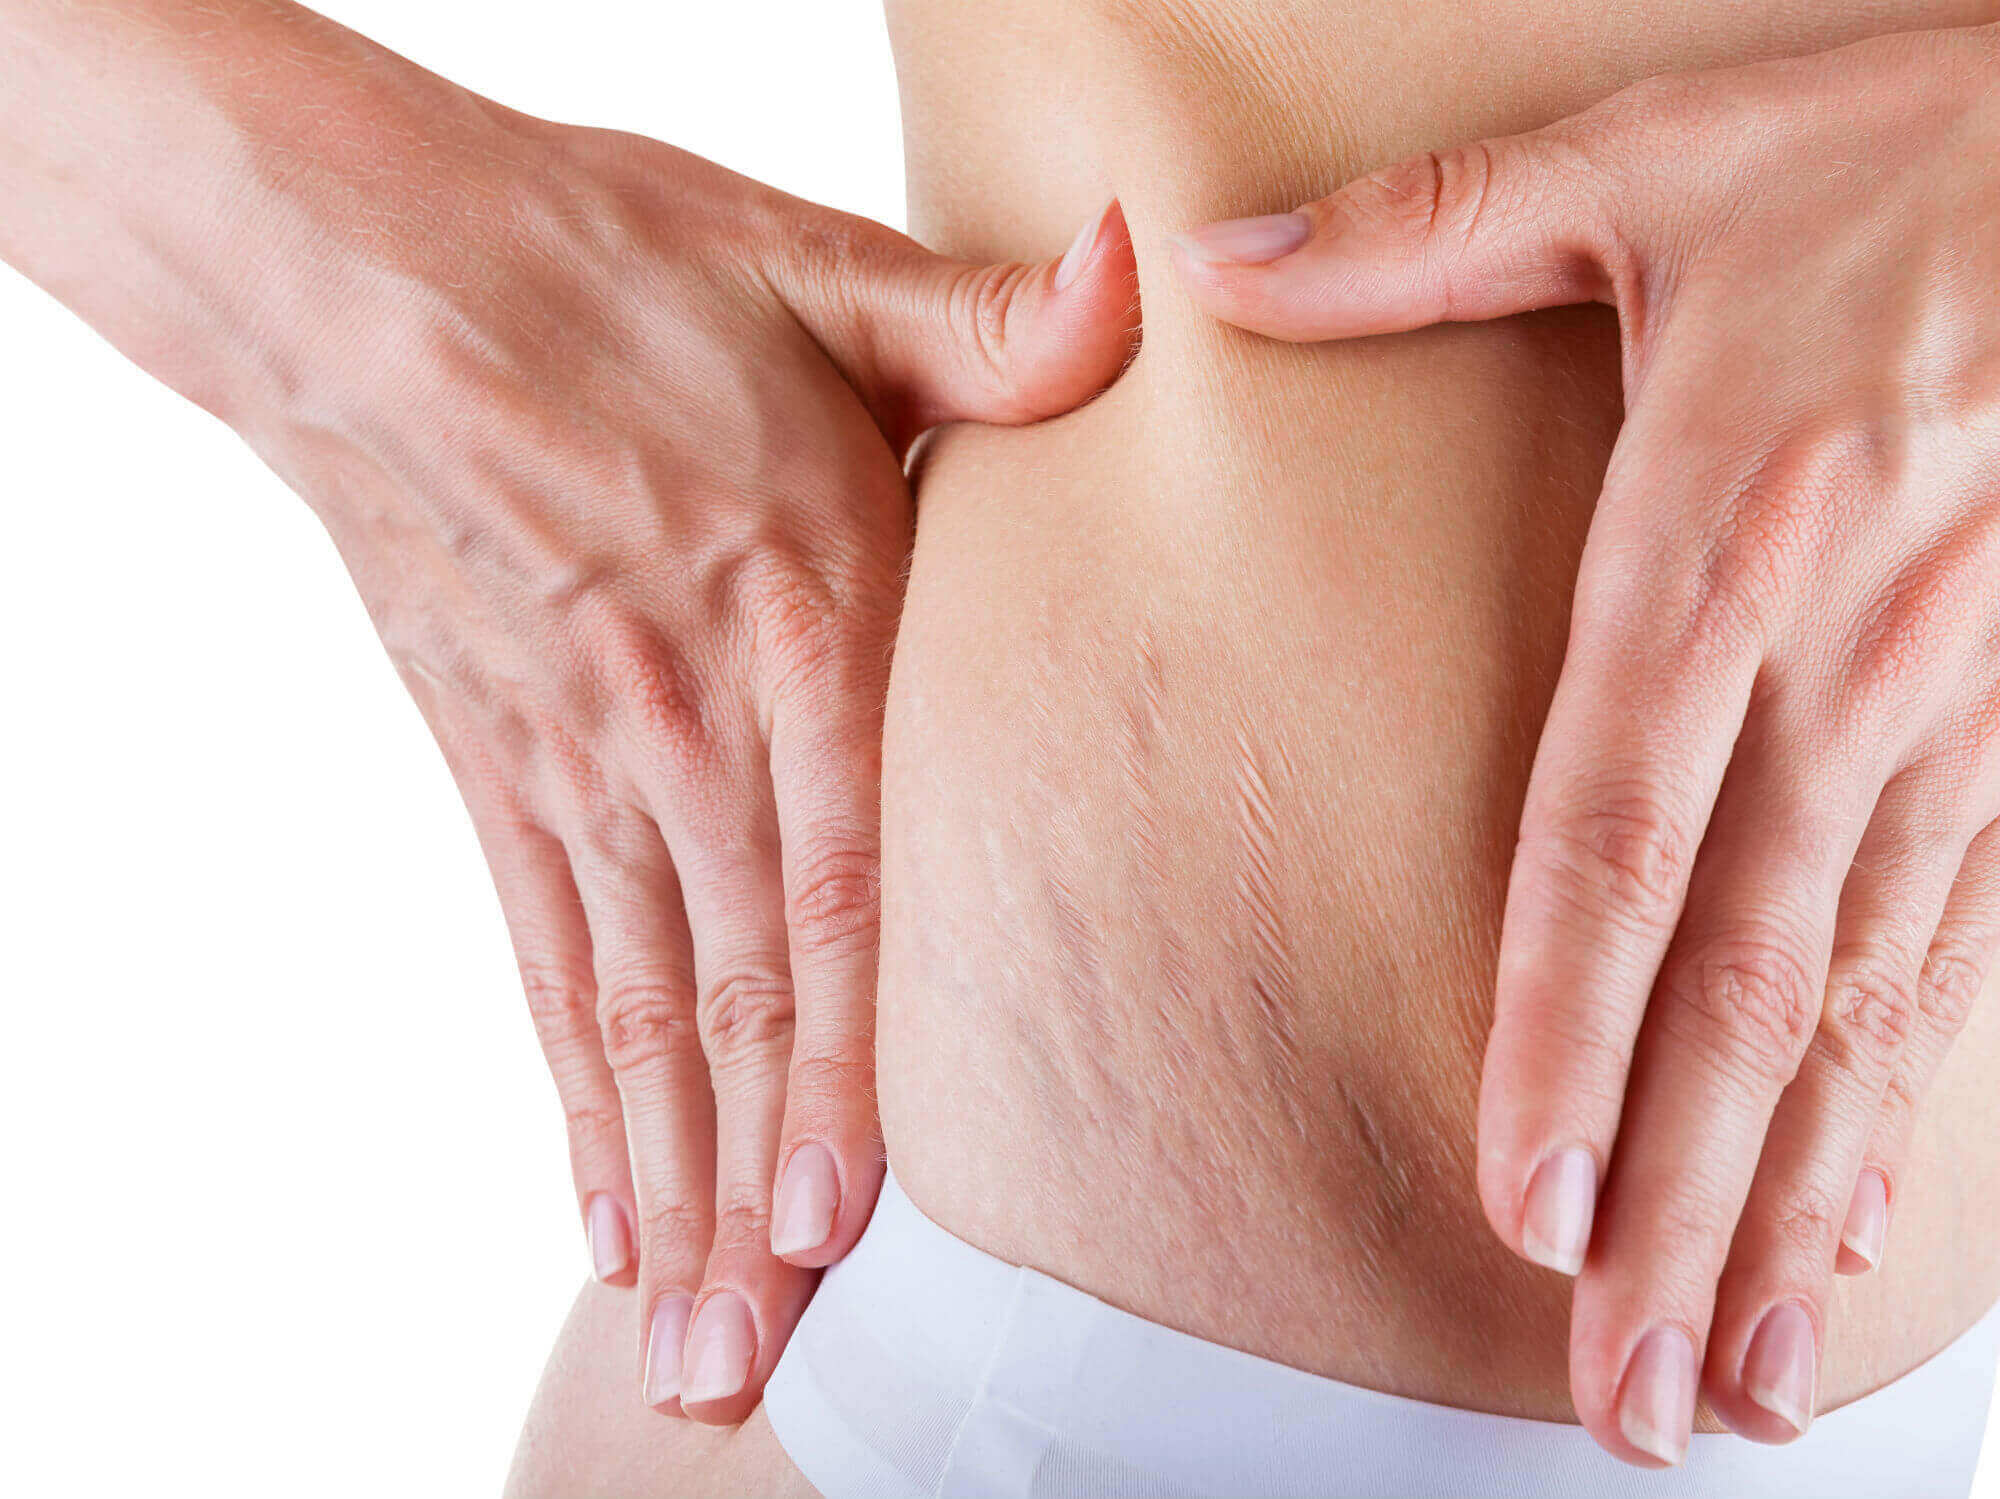 Can You Get Rid of Stretch Marks